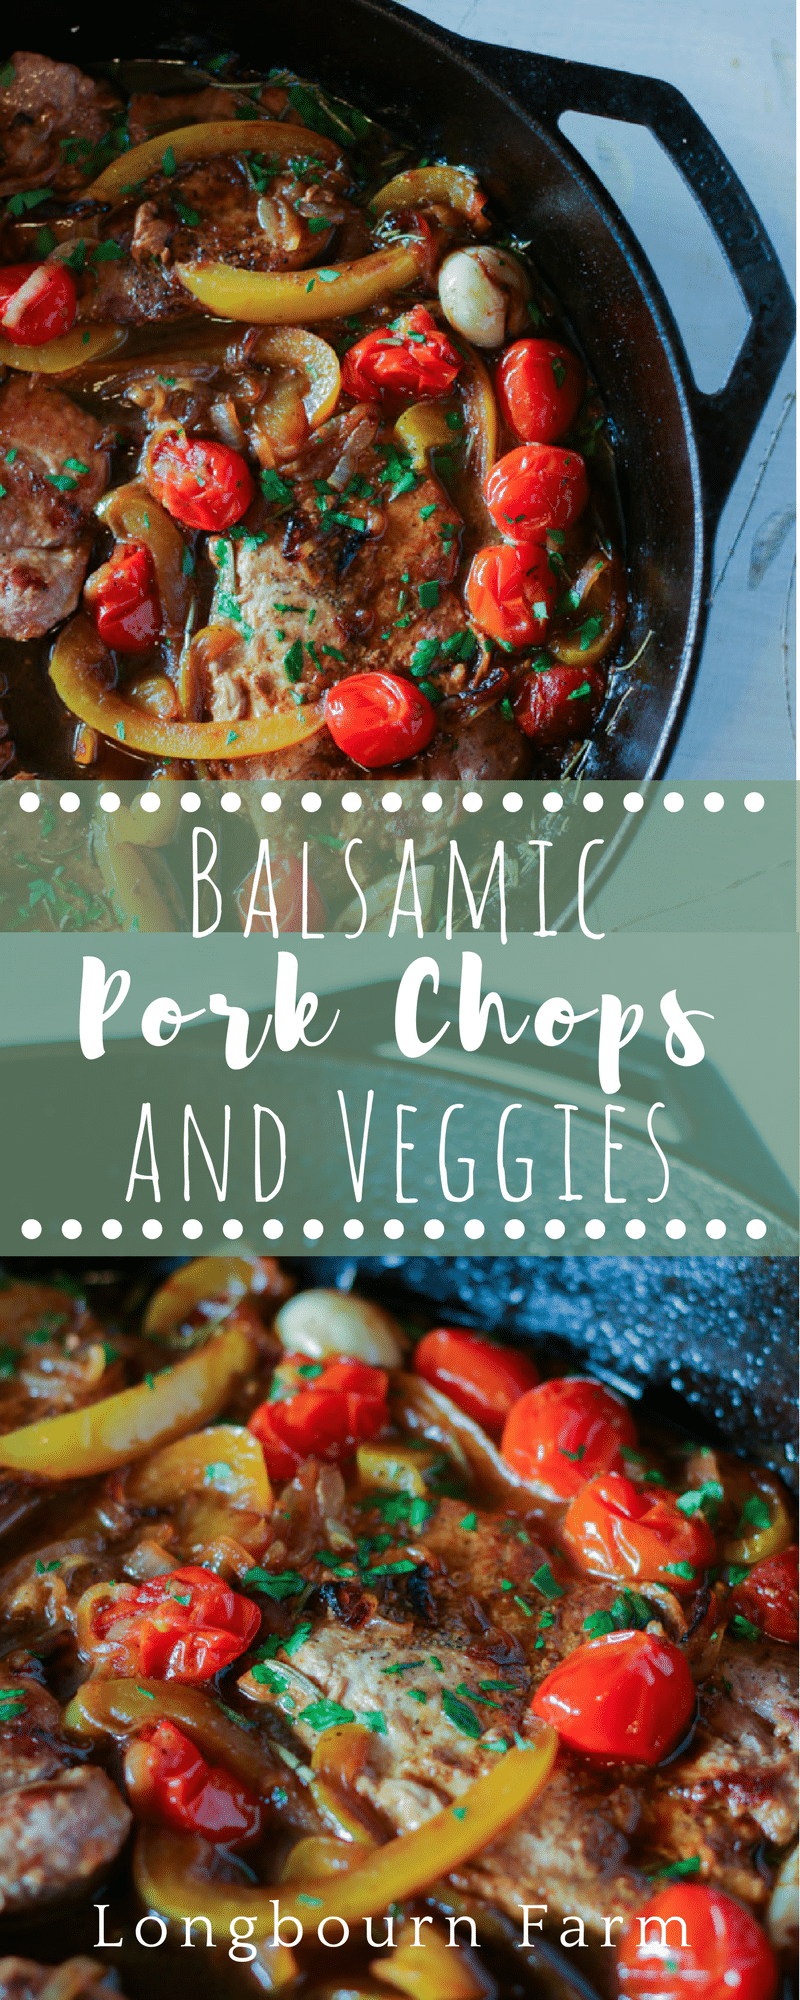 Balsamic pork chops are a quick one-pan meal that is packed with flavor and color! This family-friendly main dish pairs well with any side, it's delicious! via @longbournfarm